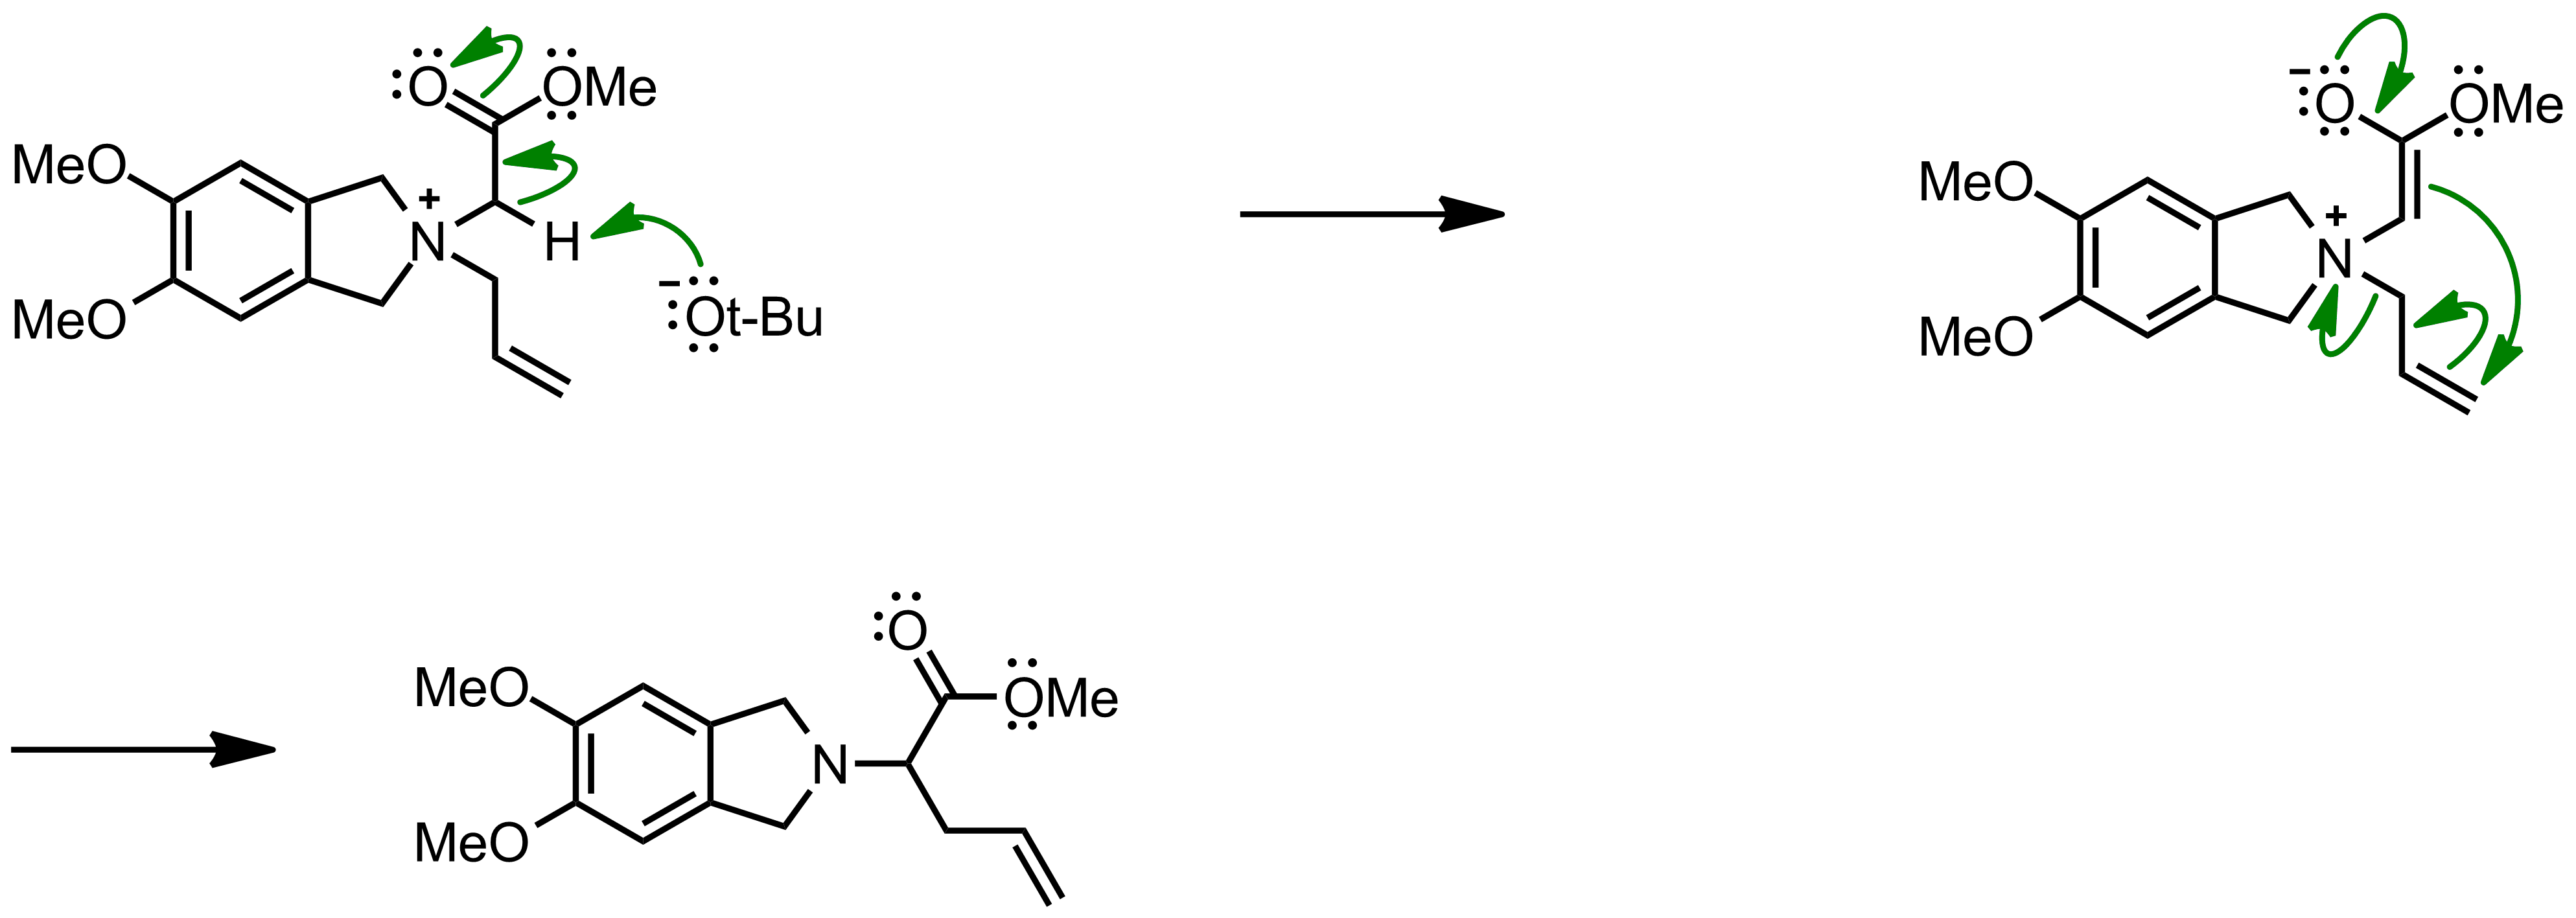 Mechanism of the Stevens Rearrangement